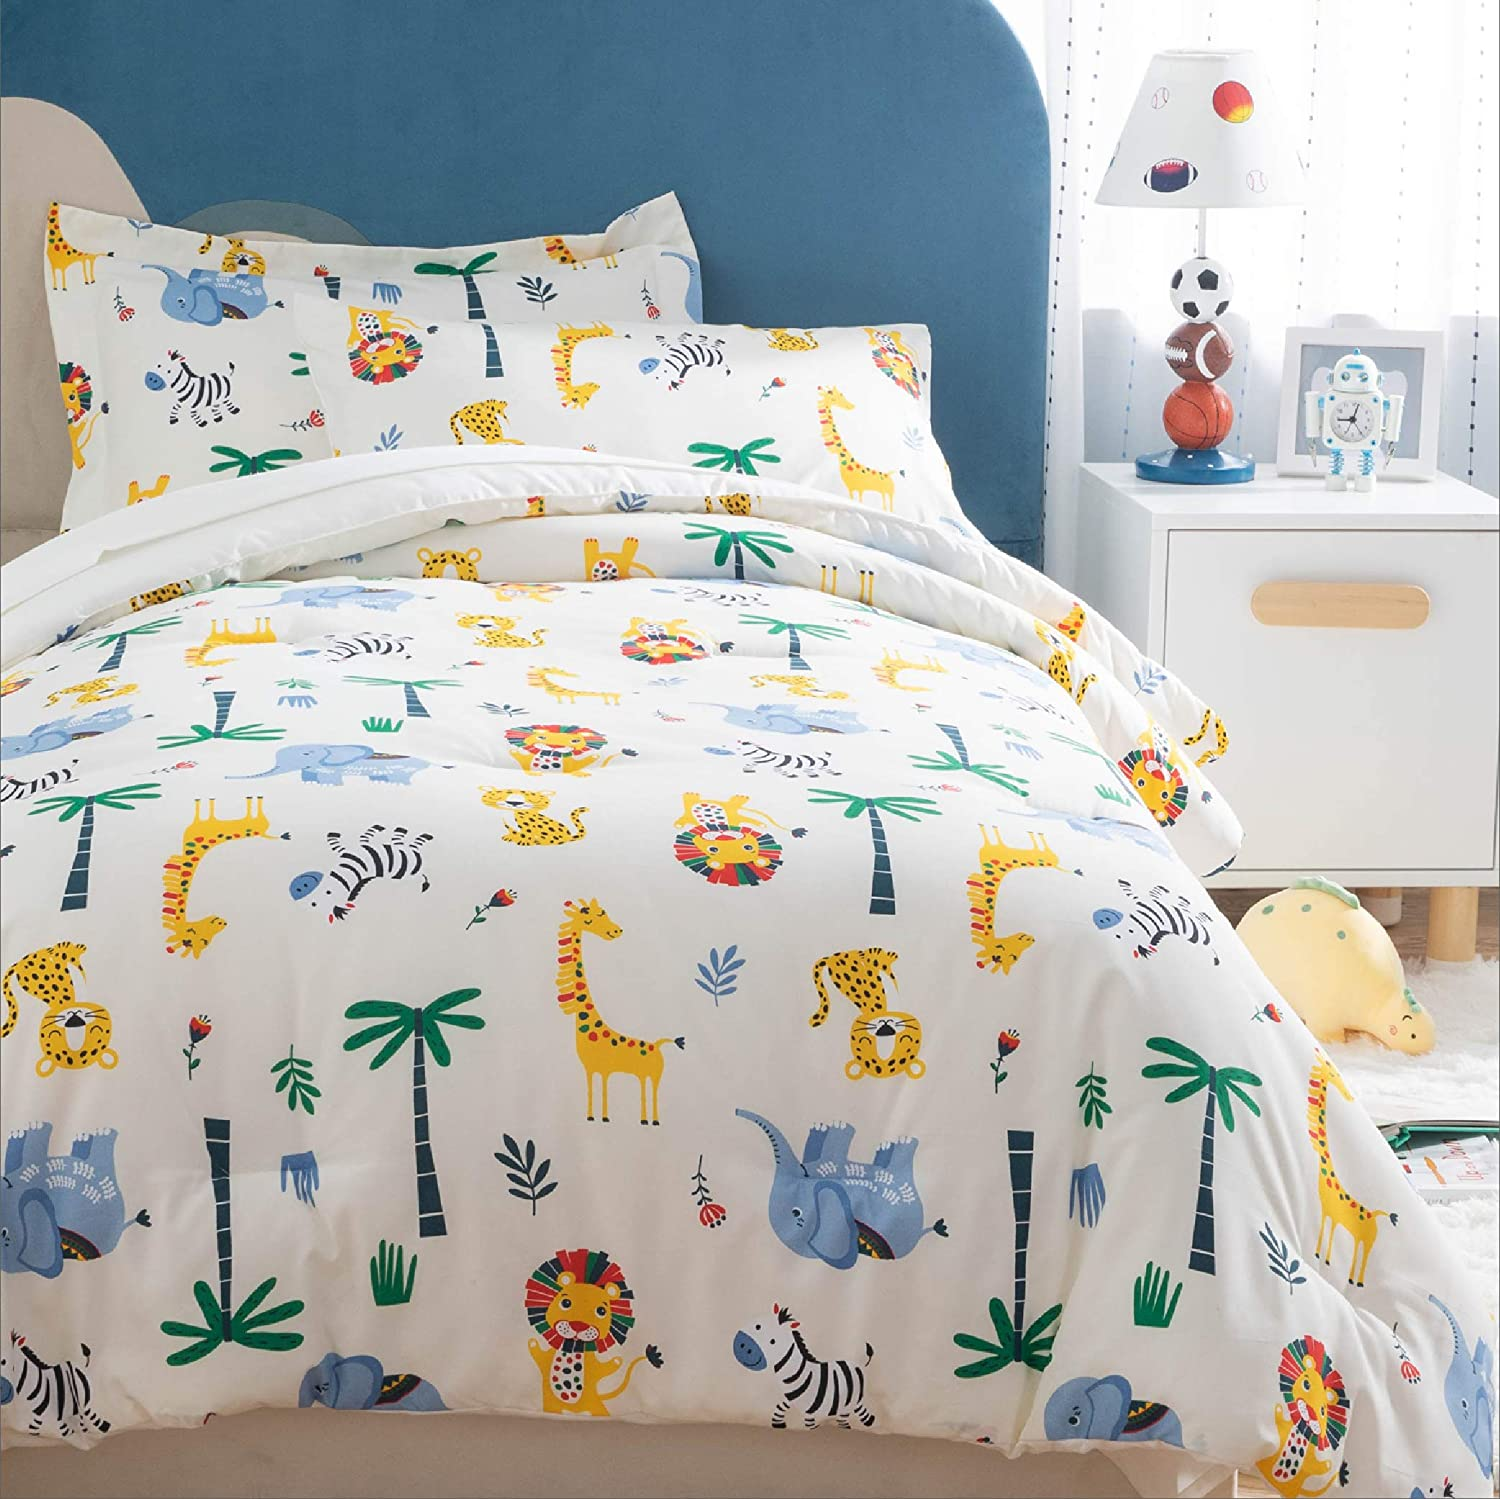 Easy Care Super Soft Microfiber Comforter and Sheets Set Dinosaur Bedding 5 Pieces Bed in a Bag Blue,Twin Bedsure Kids Twin Bedding Sets for Boys